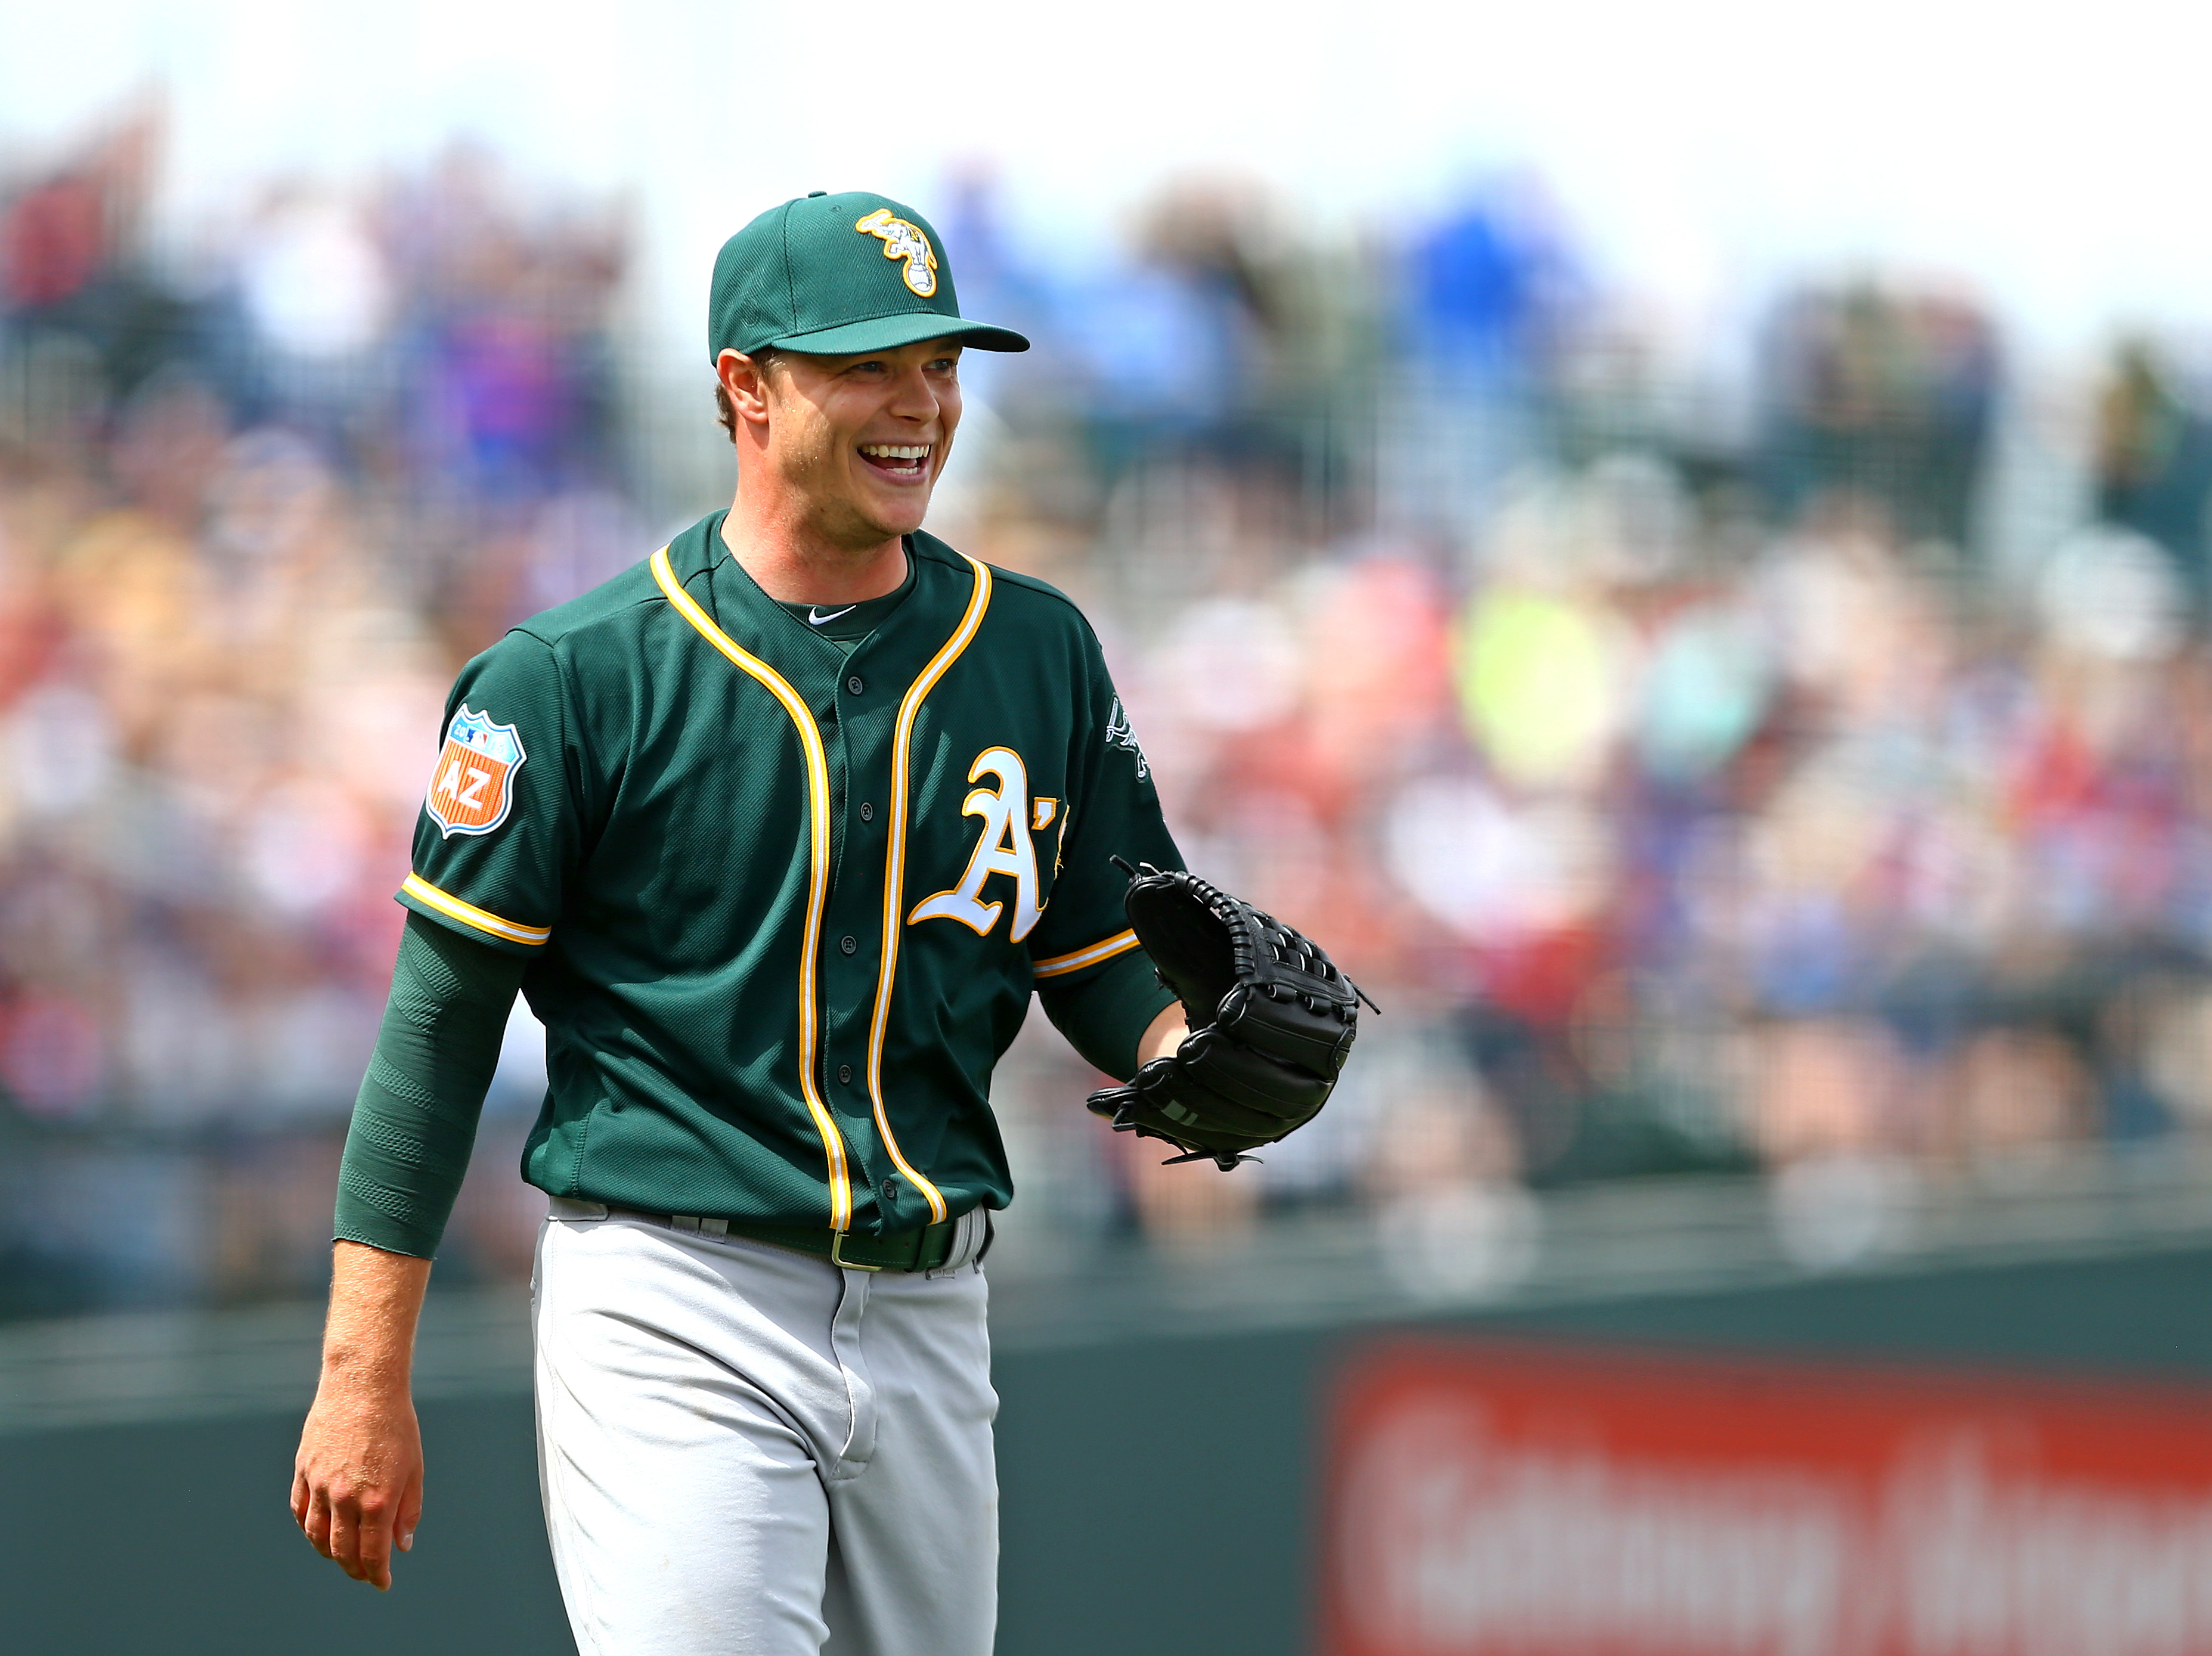 In 2015, Sonny Gray produced 3.8 fWAR while earning a third place finish in AL Cy Young Award voting.